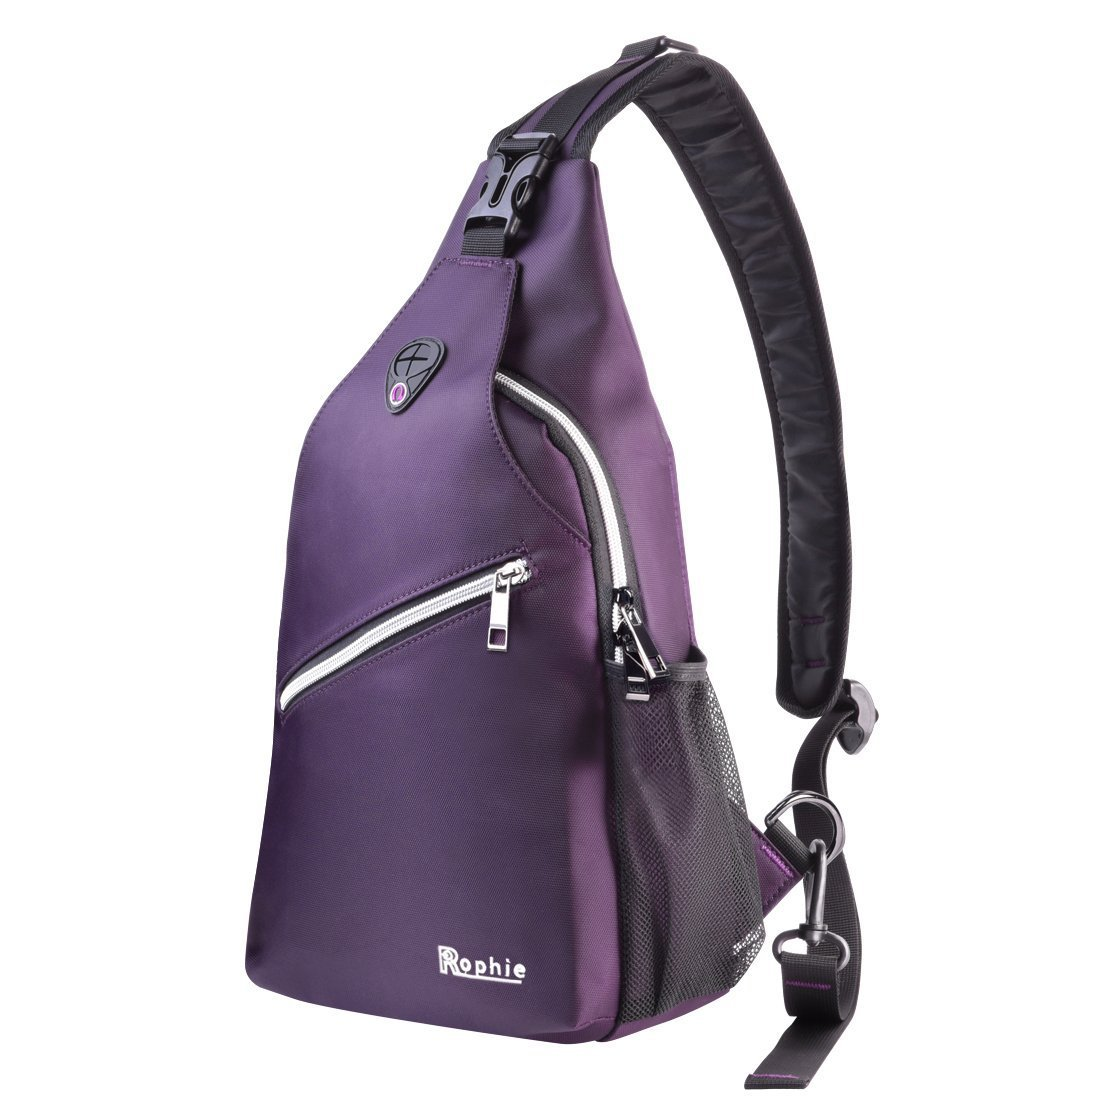 Sling Shoulder Bags, Rophie Nylon Chest Crossbody Bag Single Shoulder Backpacks Multipurpose Casual Daypacks for Outdoor Sports Travel Camping Hiking for Man Women Boys Girls, Purple